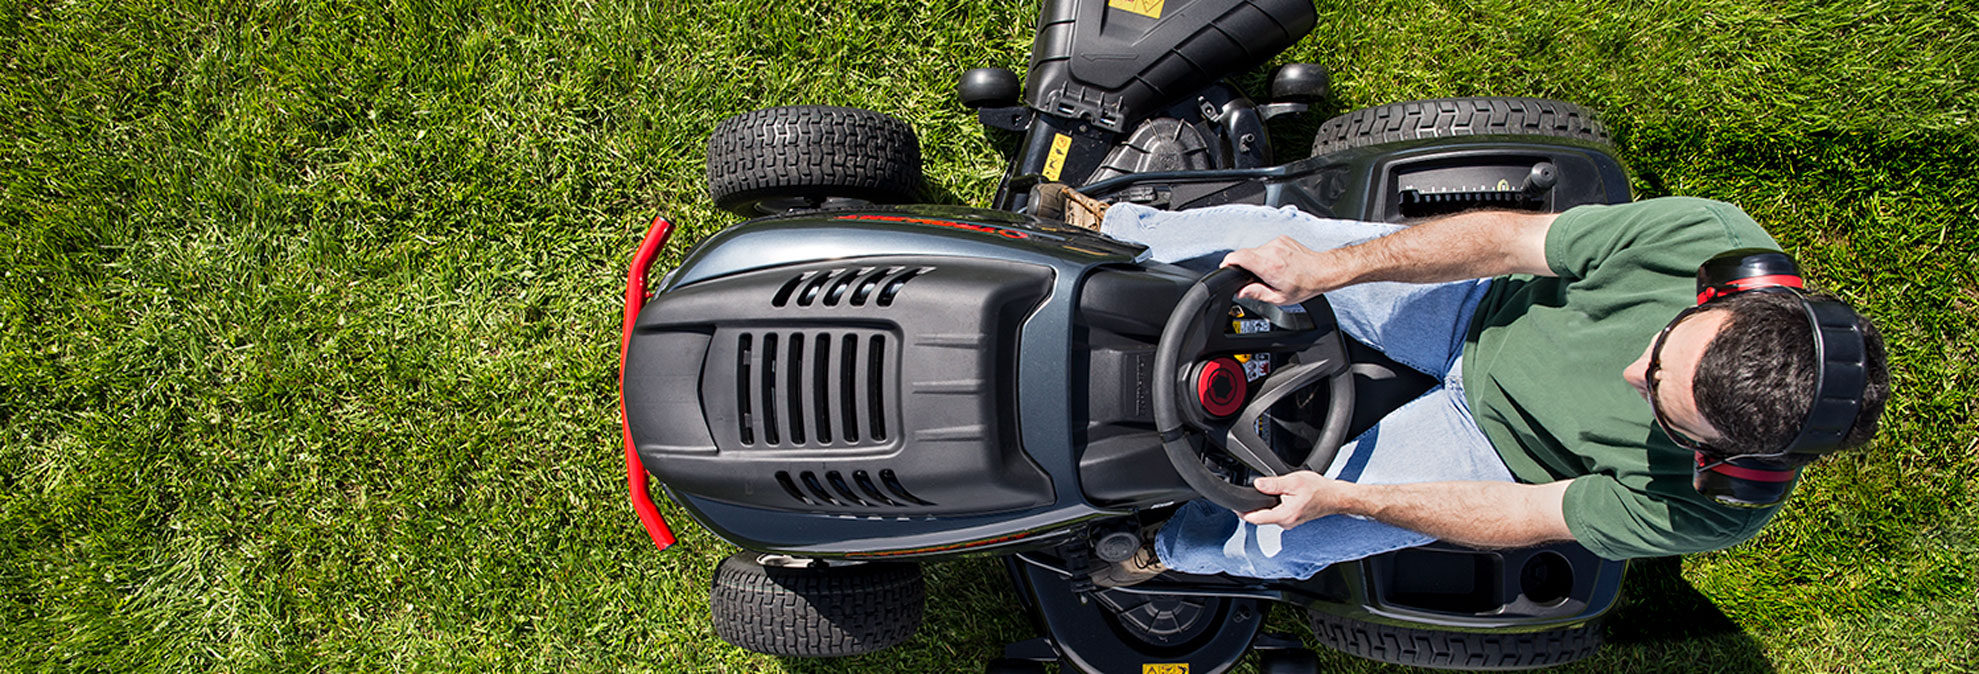 When To Find The Best Sales On A Riding Lawn Mower